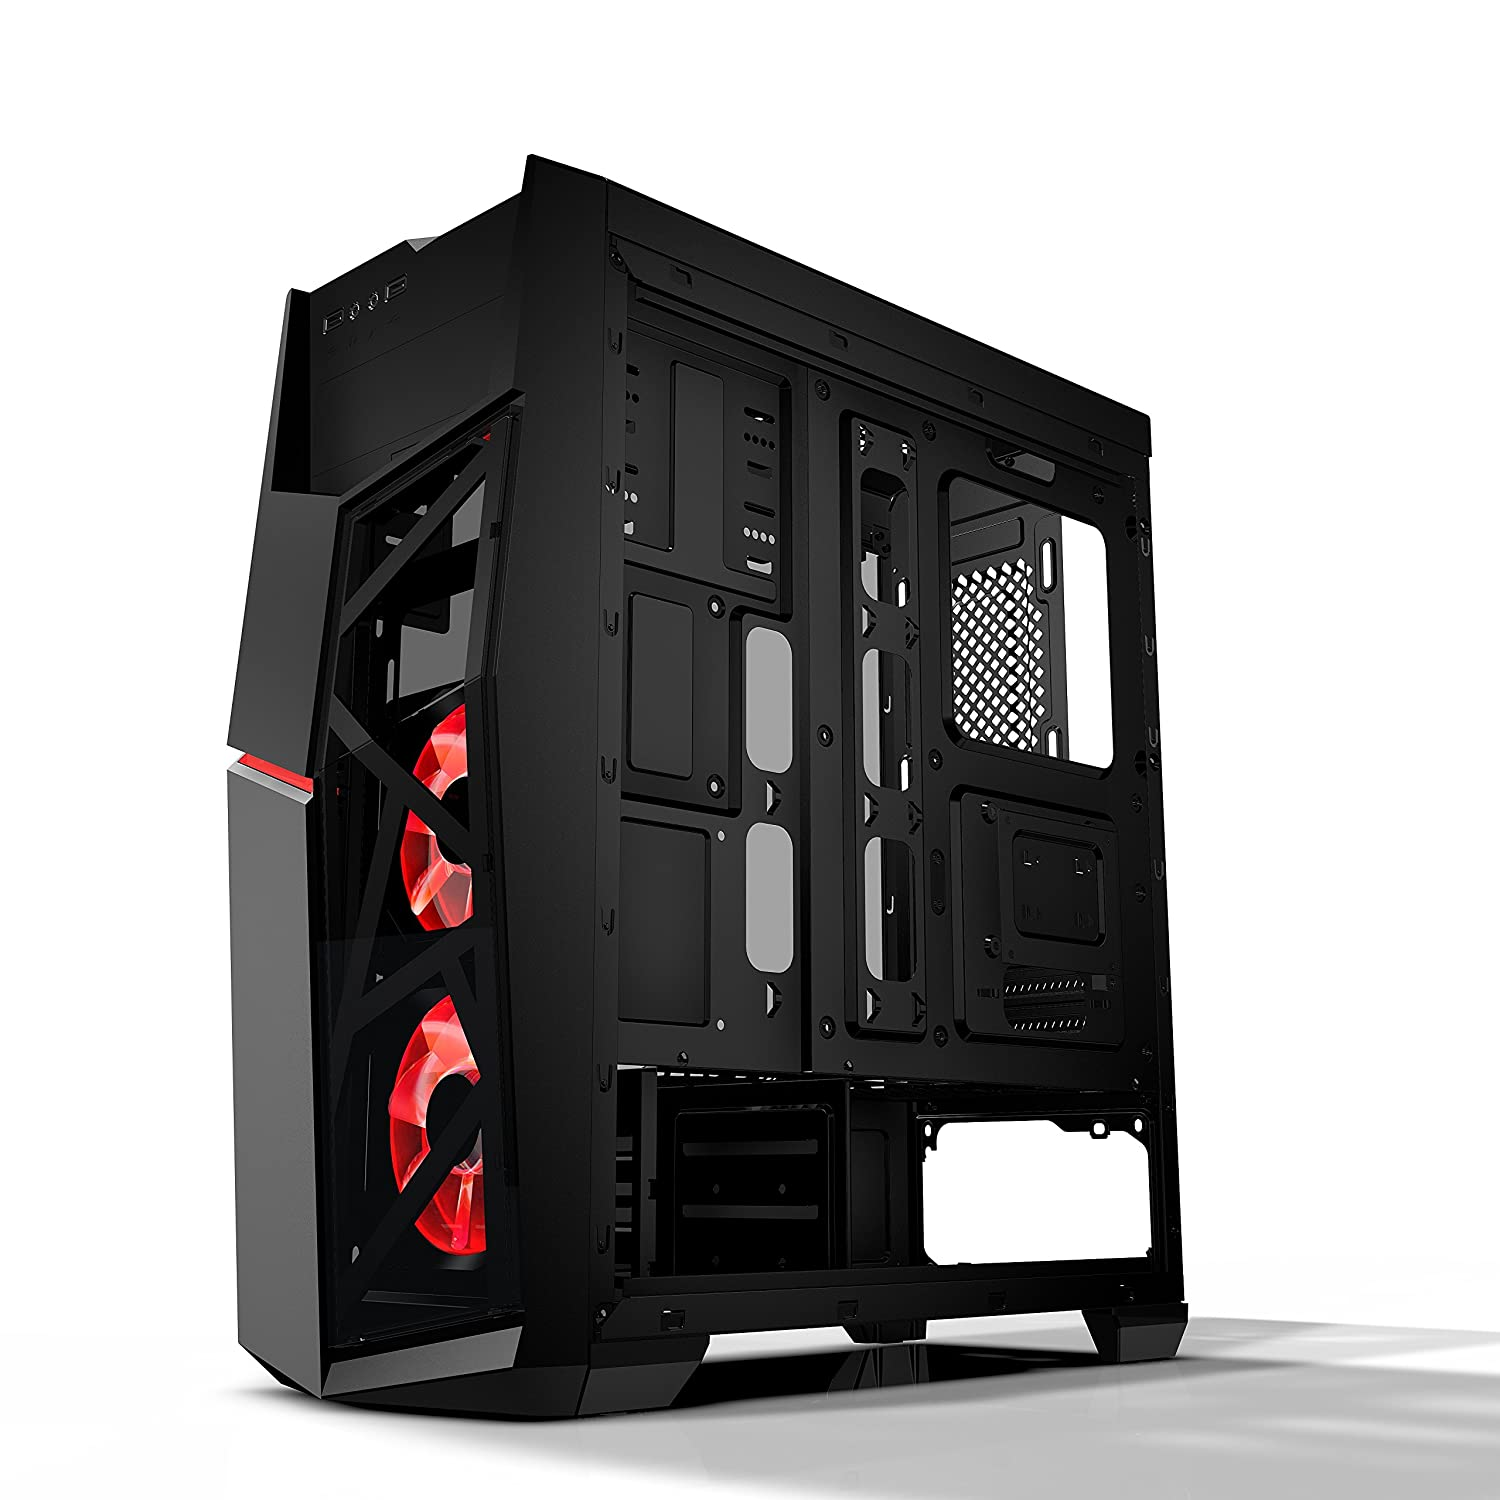 Amazon.com: AZZA Golem 221 Midtower Gaming Case with 2x120mm Red LED Fans: Computers & Accessories